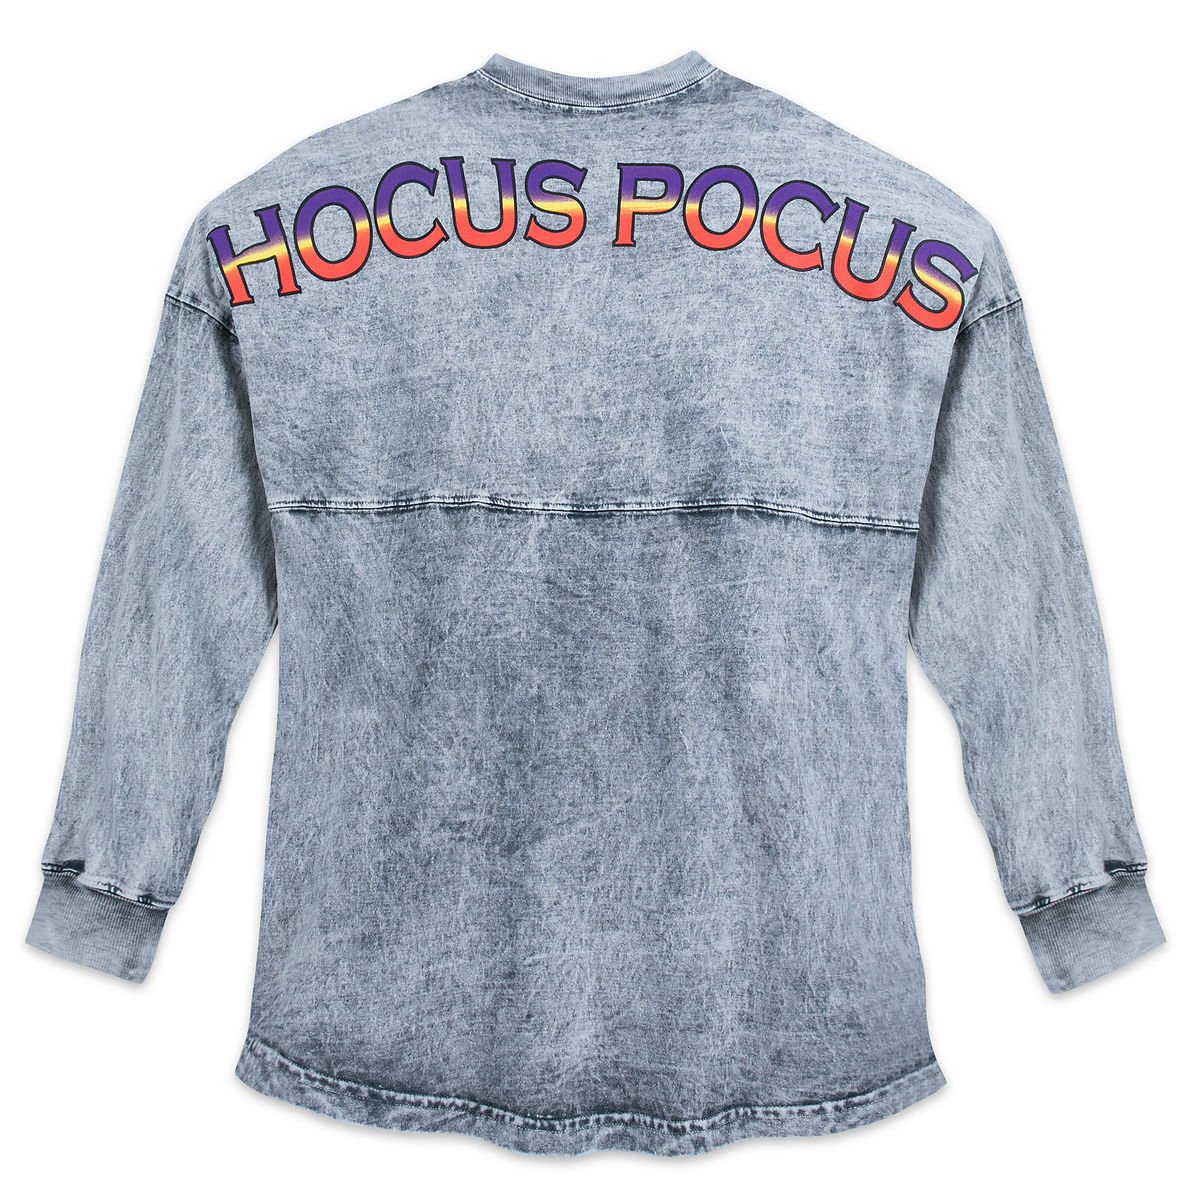 Hocus Pocus Merchandise Now Available! Details Below! #DisneyStyle 5